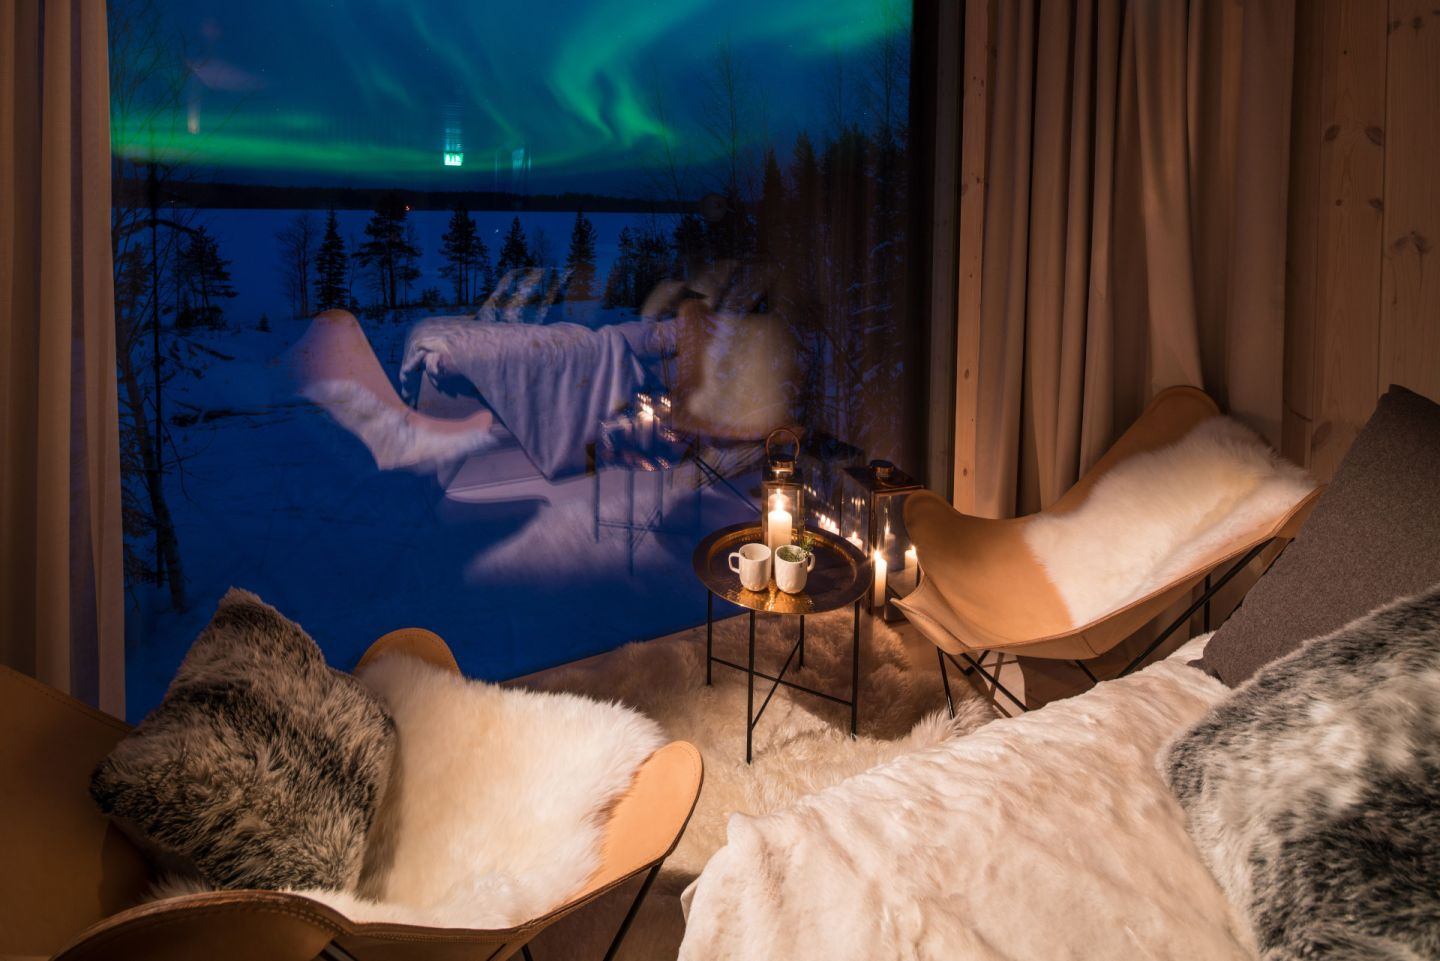 Northern Lights, as seen from the Arctic TreeHouse Hotel, a special winter accommodation in Rovaniemi, Finland